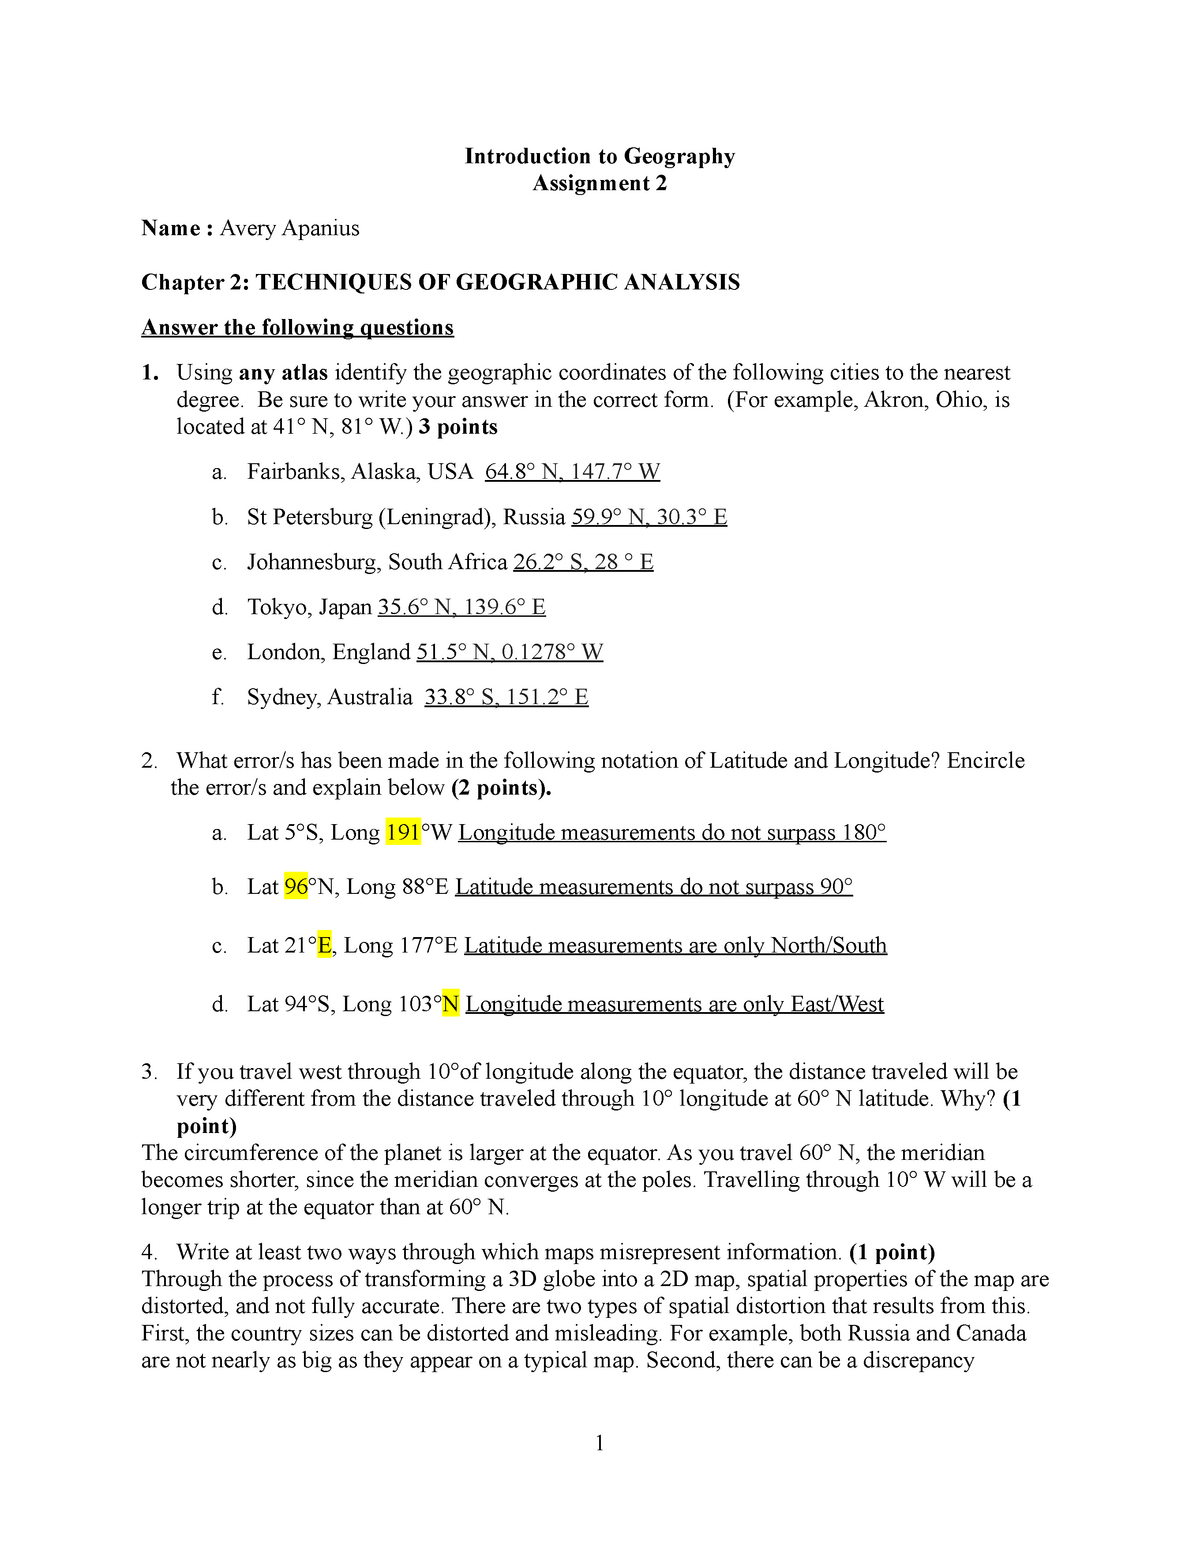 Assgn 2 Apanius - assignment for chapter 2 with answers